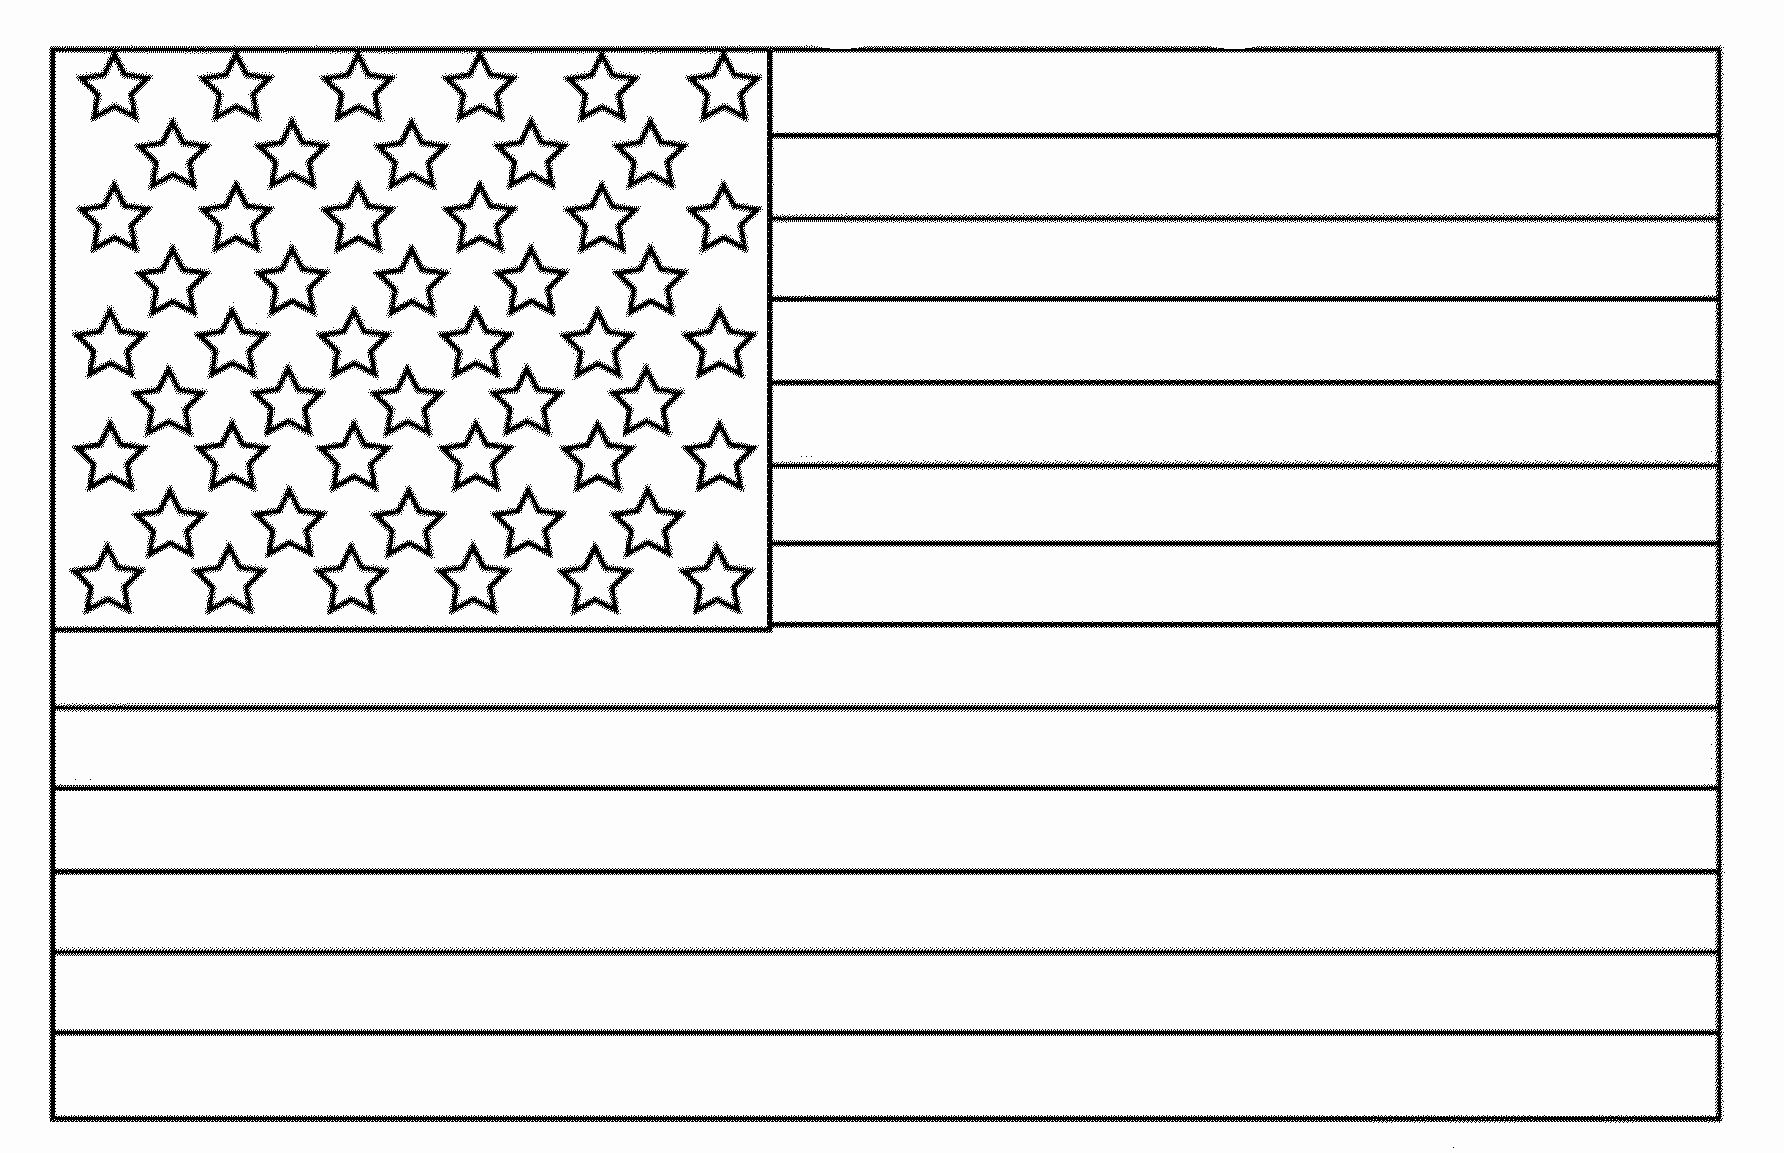 country flag coloring pages top 10 country and world flags coloring pages for your coloring flag country pages